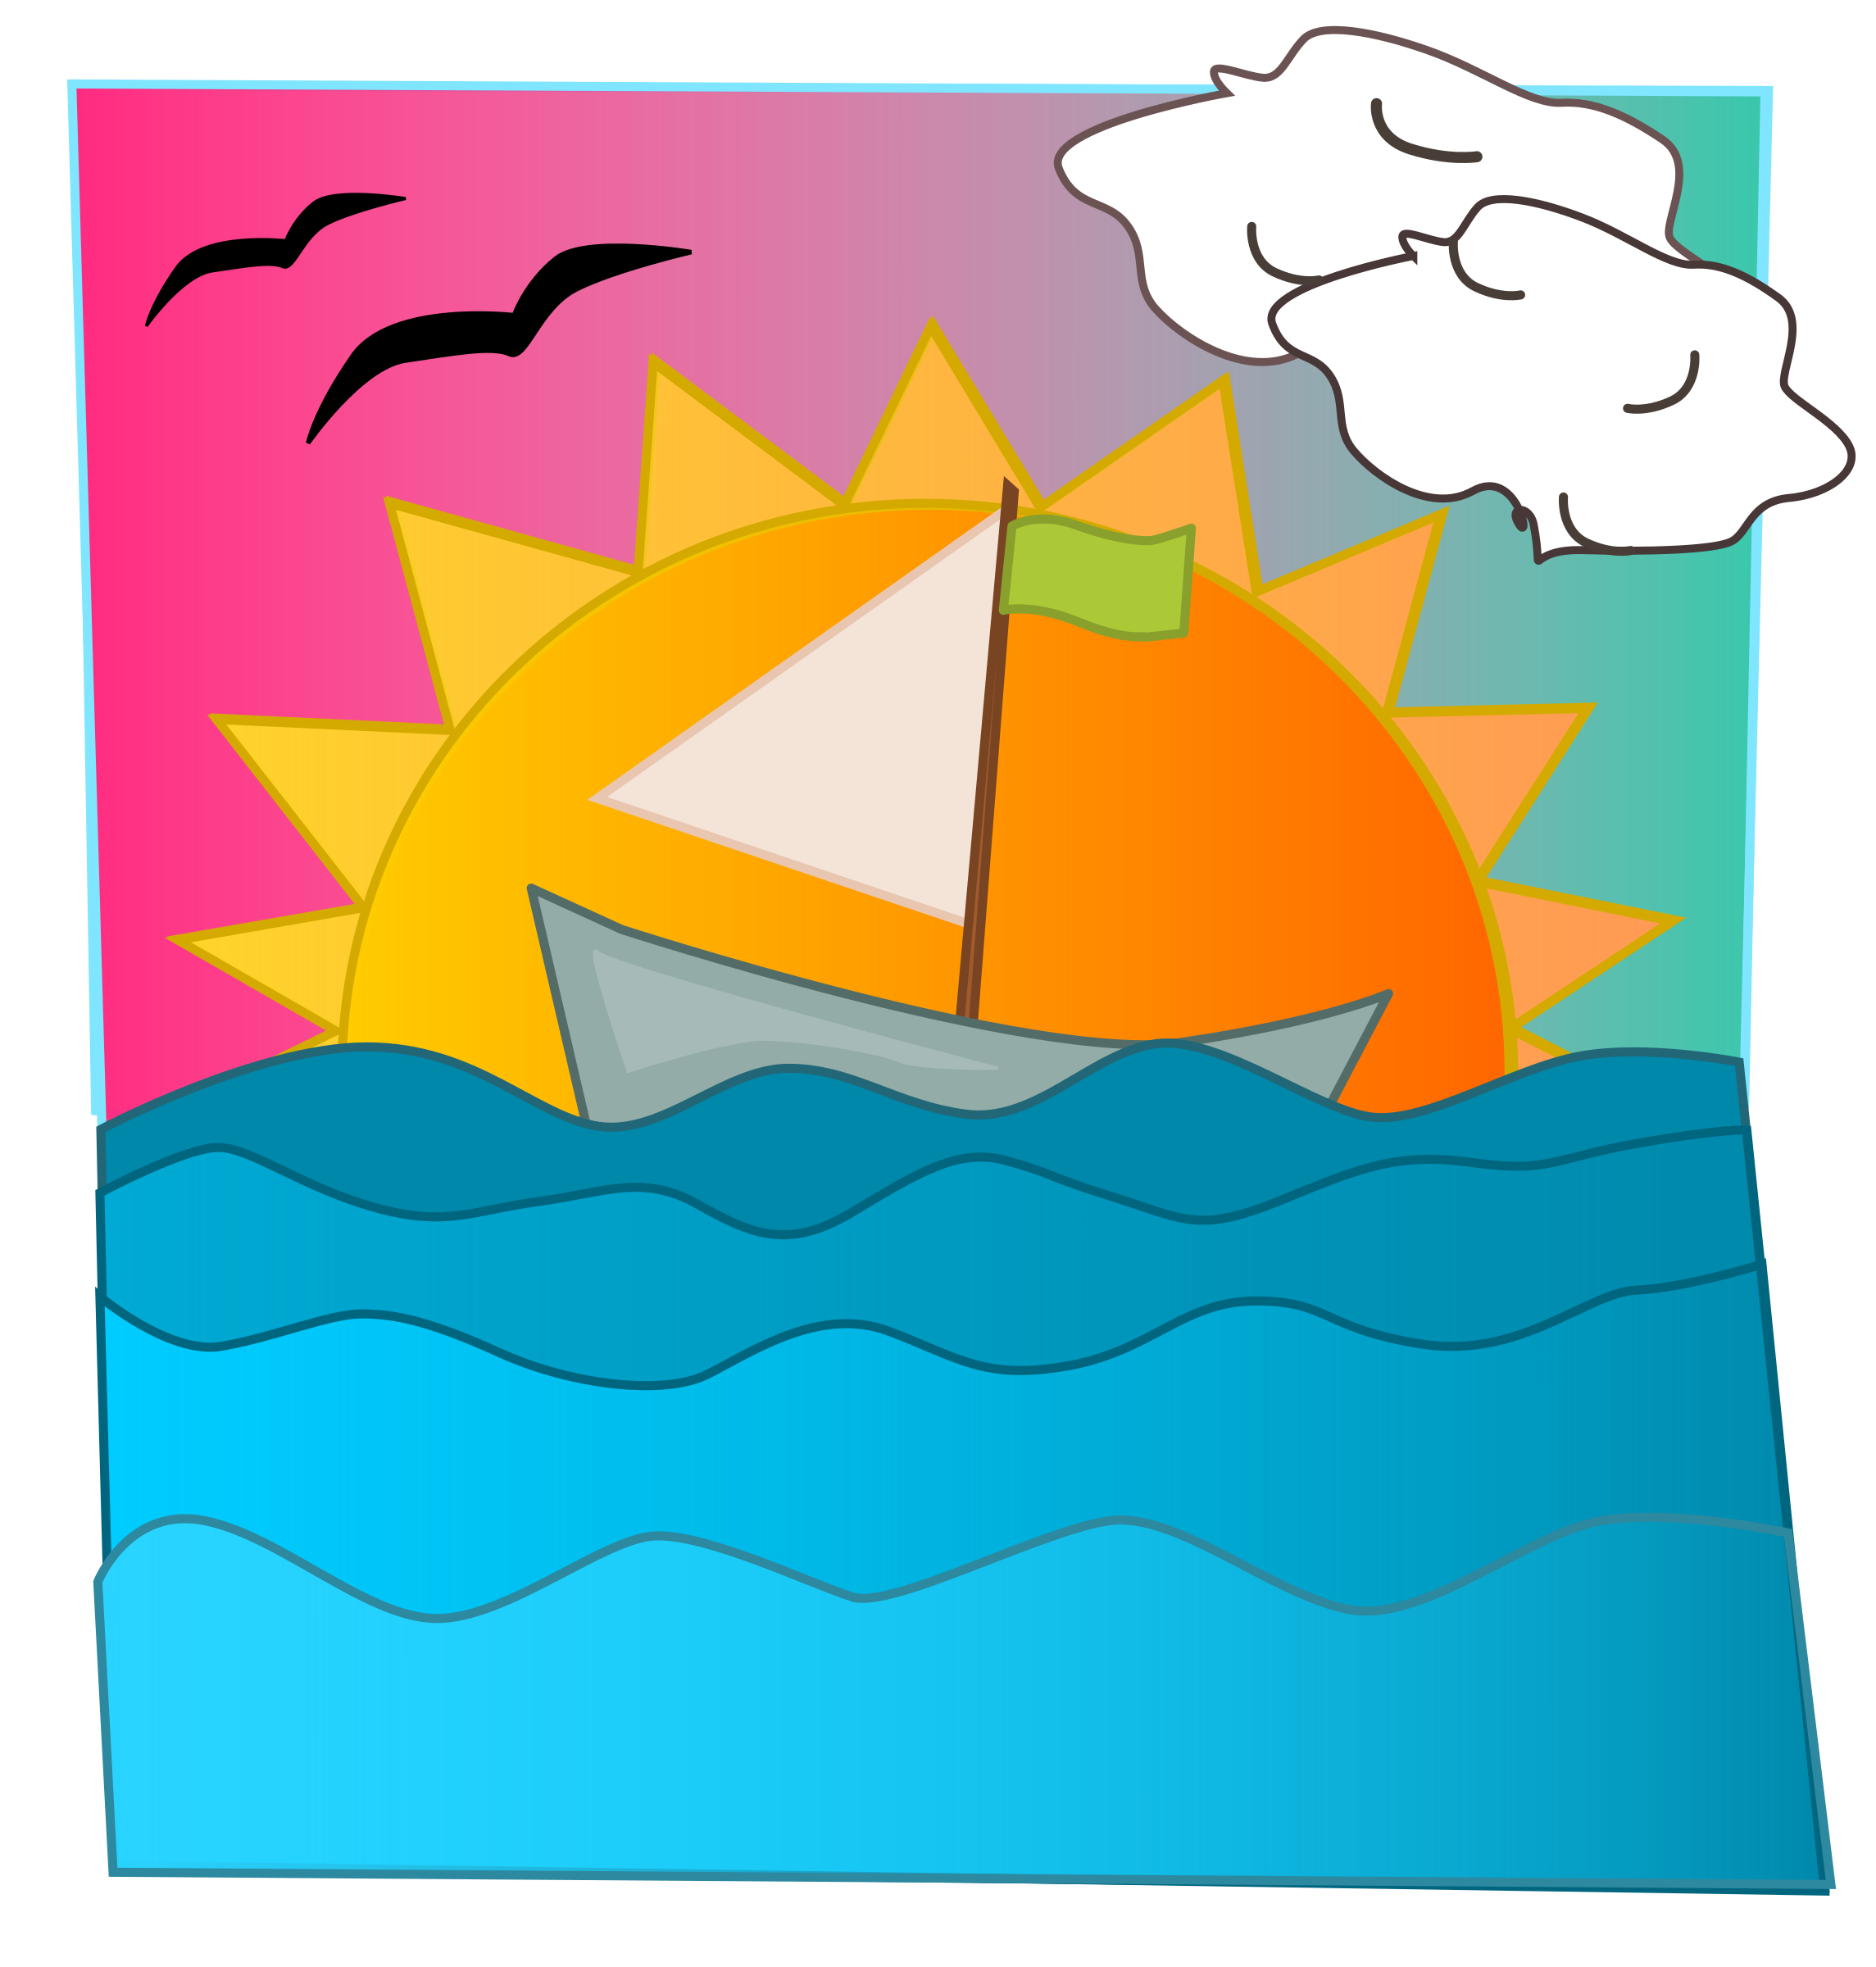 Clipart boat beach. Sunset big image png